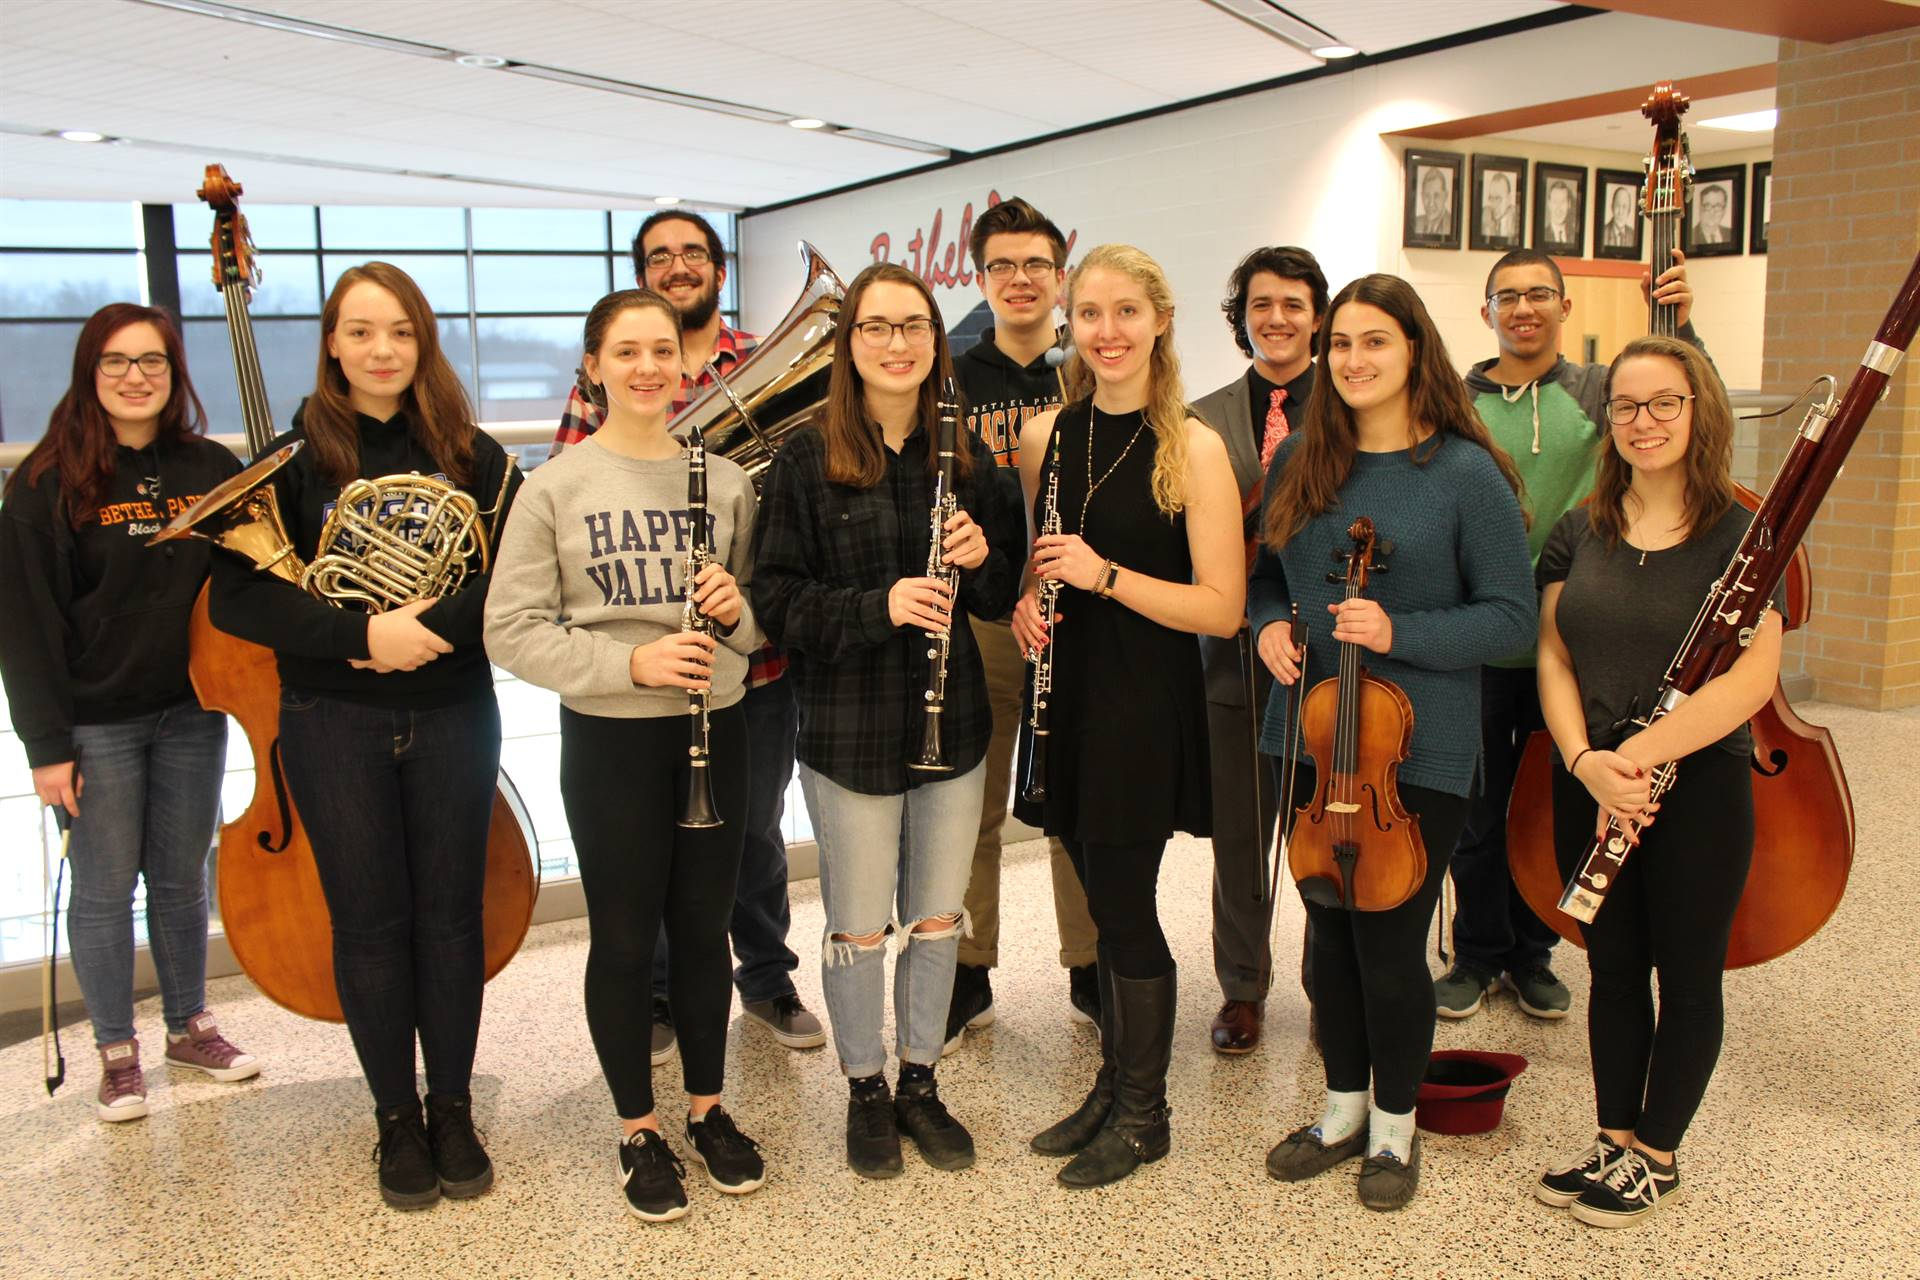 11 of the 13 District Orchestra musicians